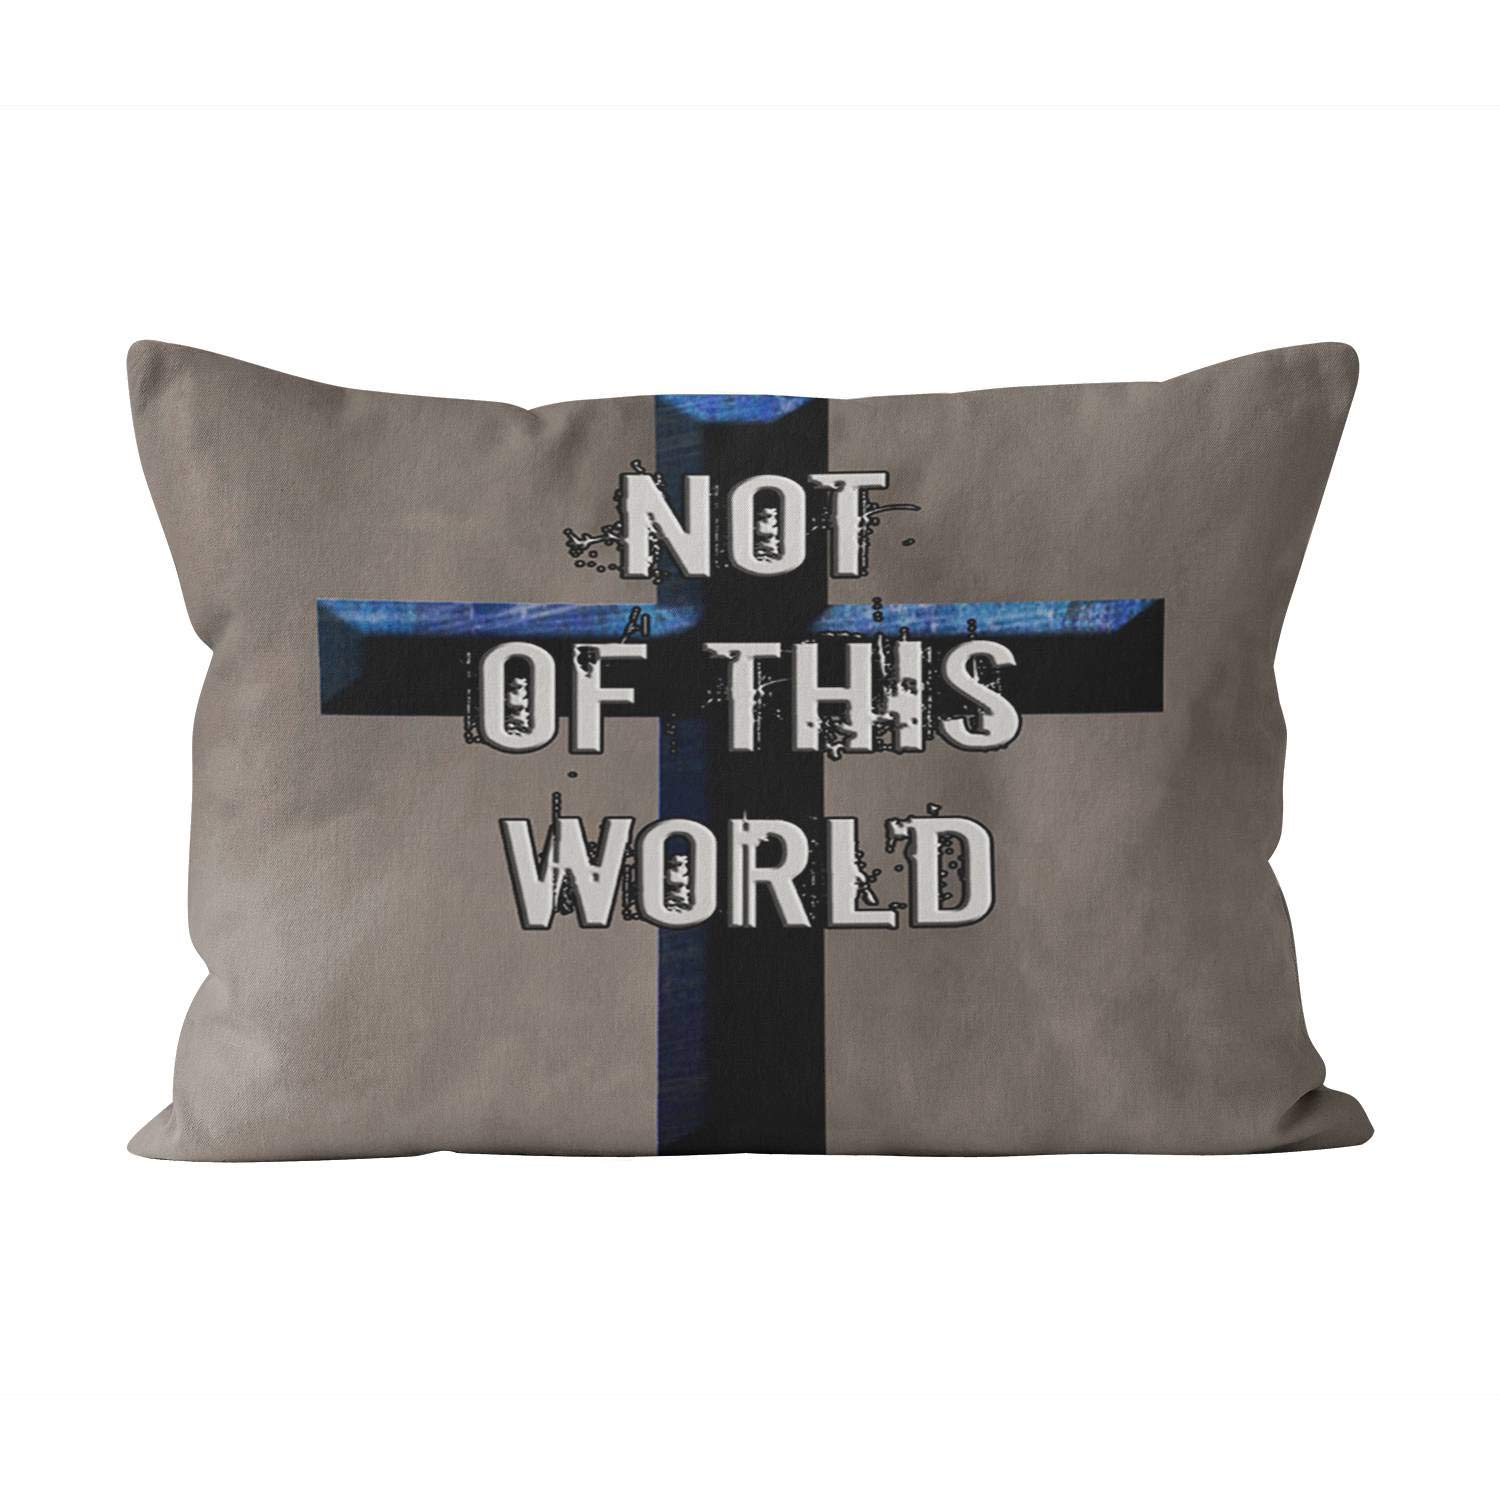 Suklly Cute Not of This World Christian Notw Hidden Zipper Home Decorative Rectangle Throw Pillow Cover Cushion Case King 20x36 Inch One Side Design Printed Pillowcase